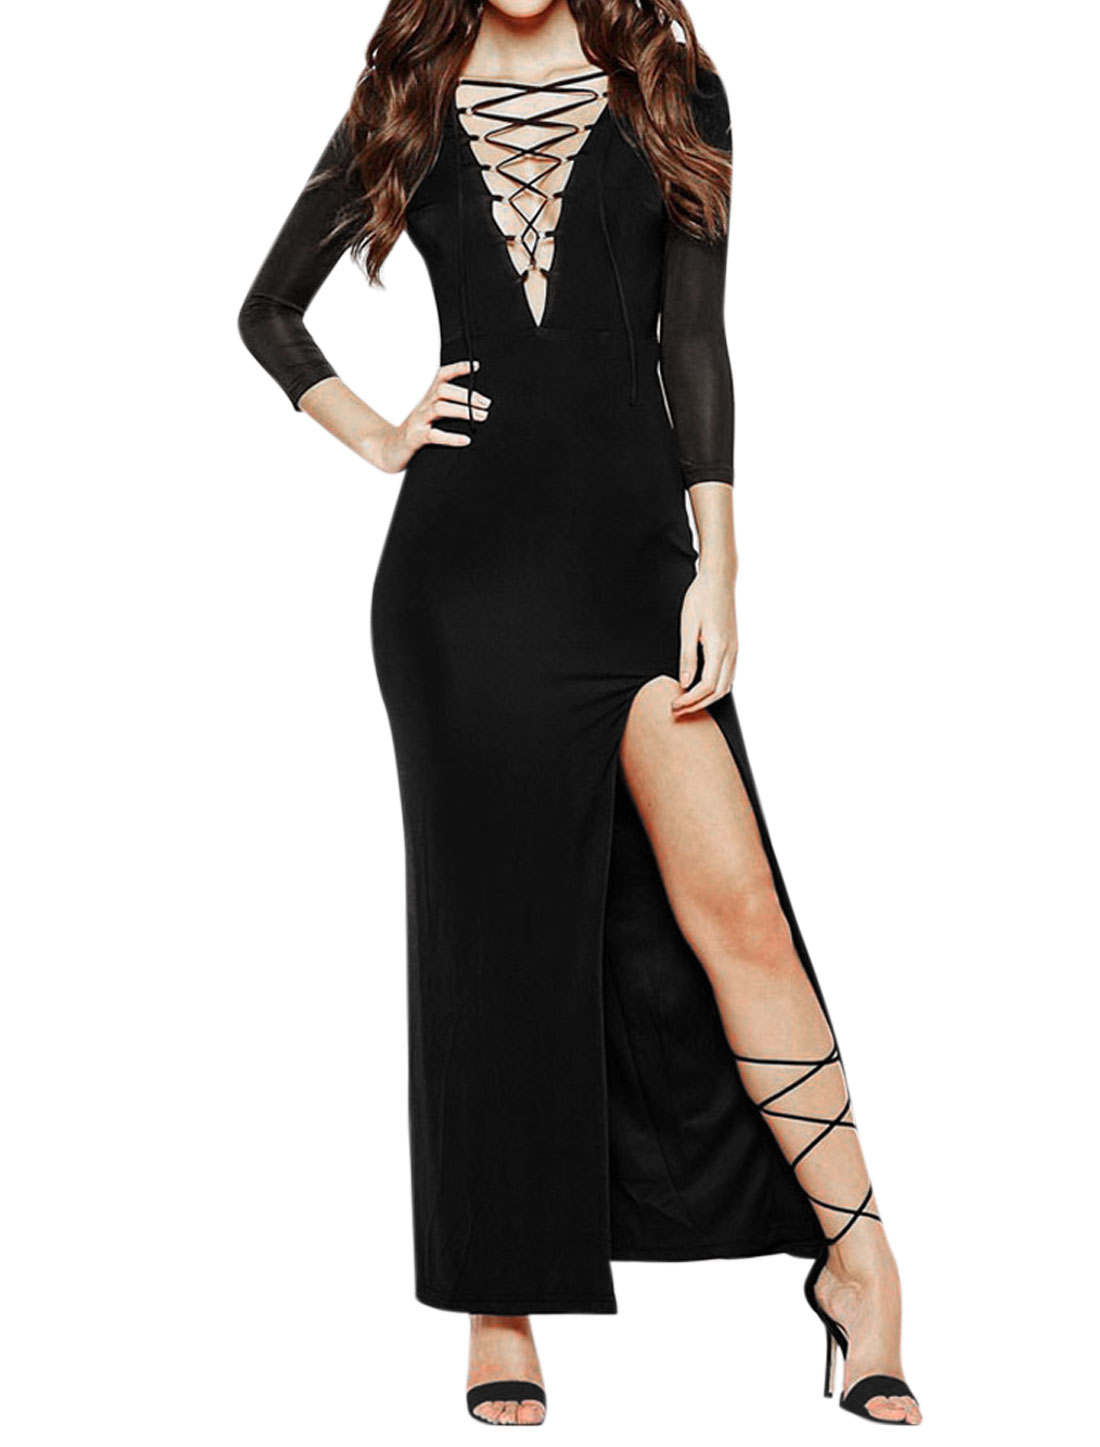 Women Lace Up Front Side Split Mesh Panel Maxi Dress Black L